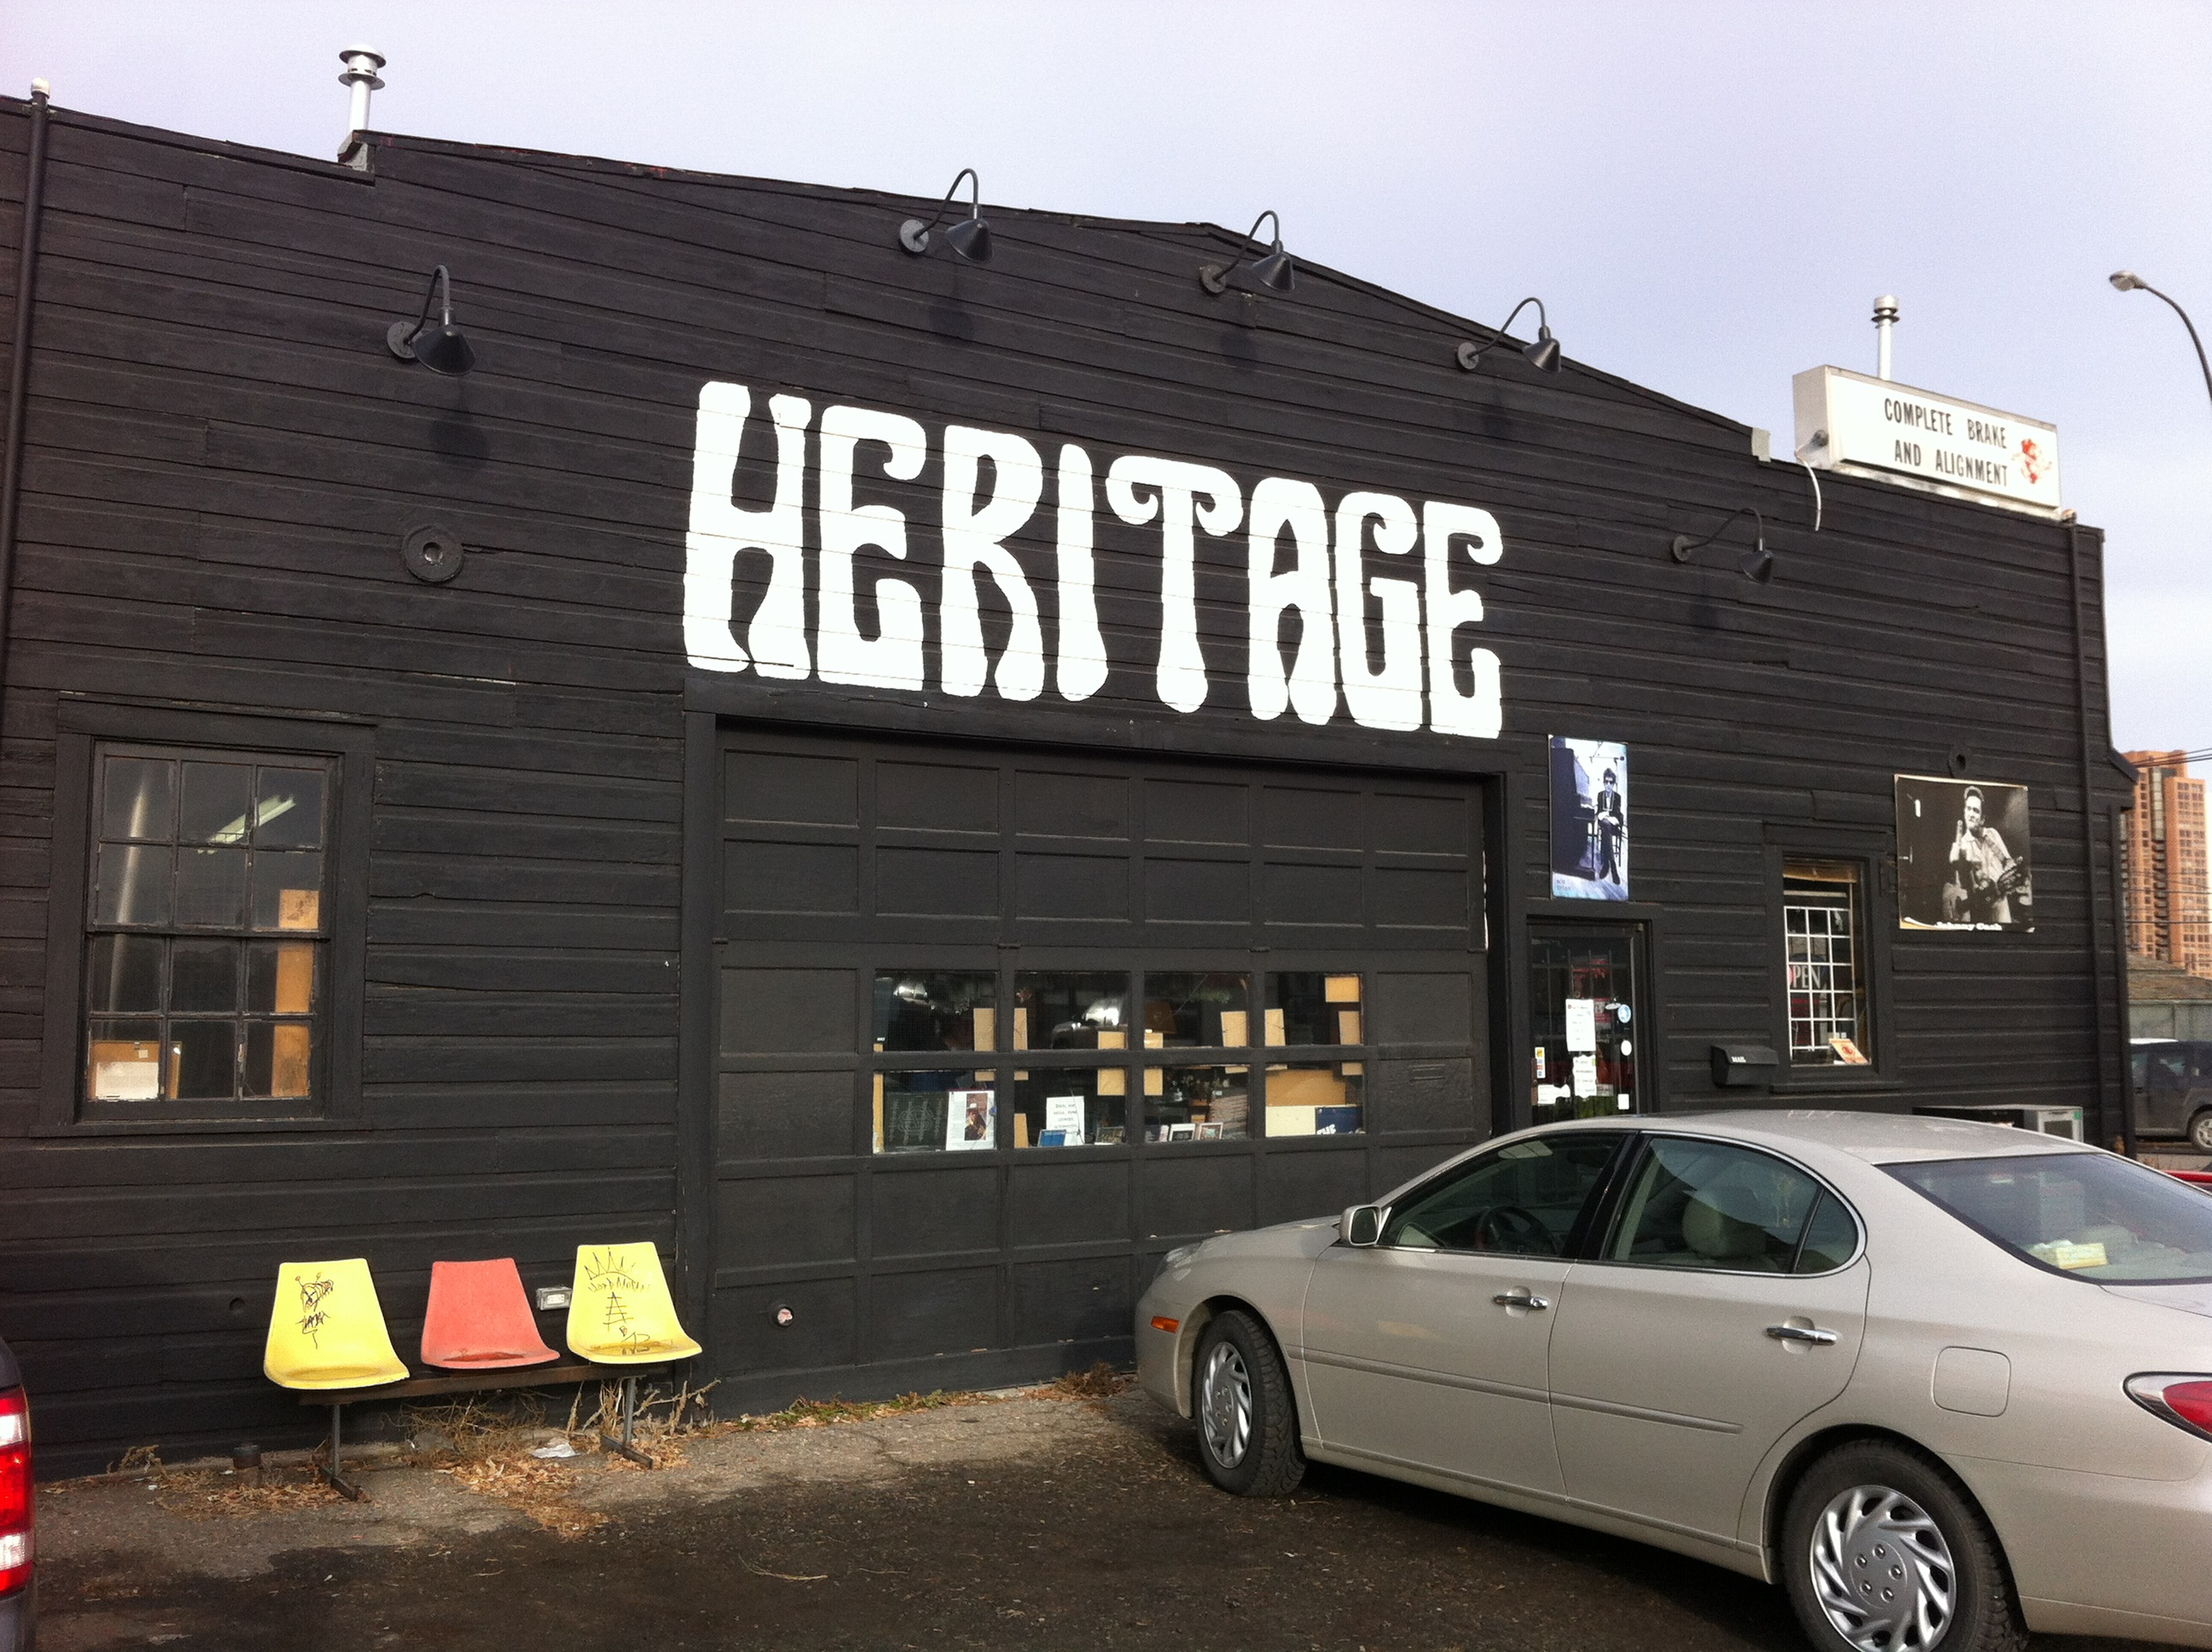 Heritage Posters & Music's home is in fact in a heritage i.e. old wood warehouse building.